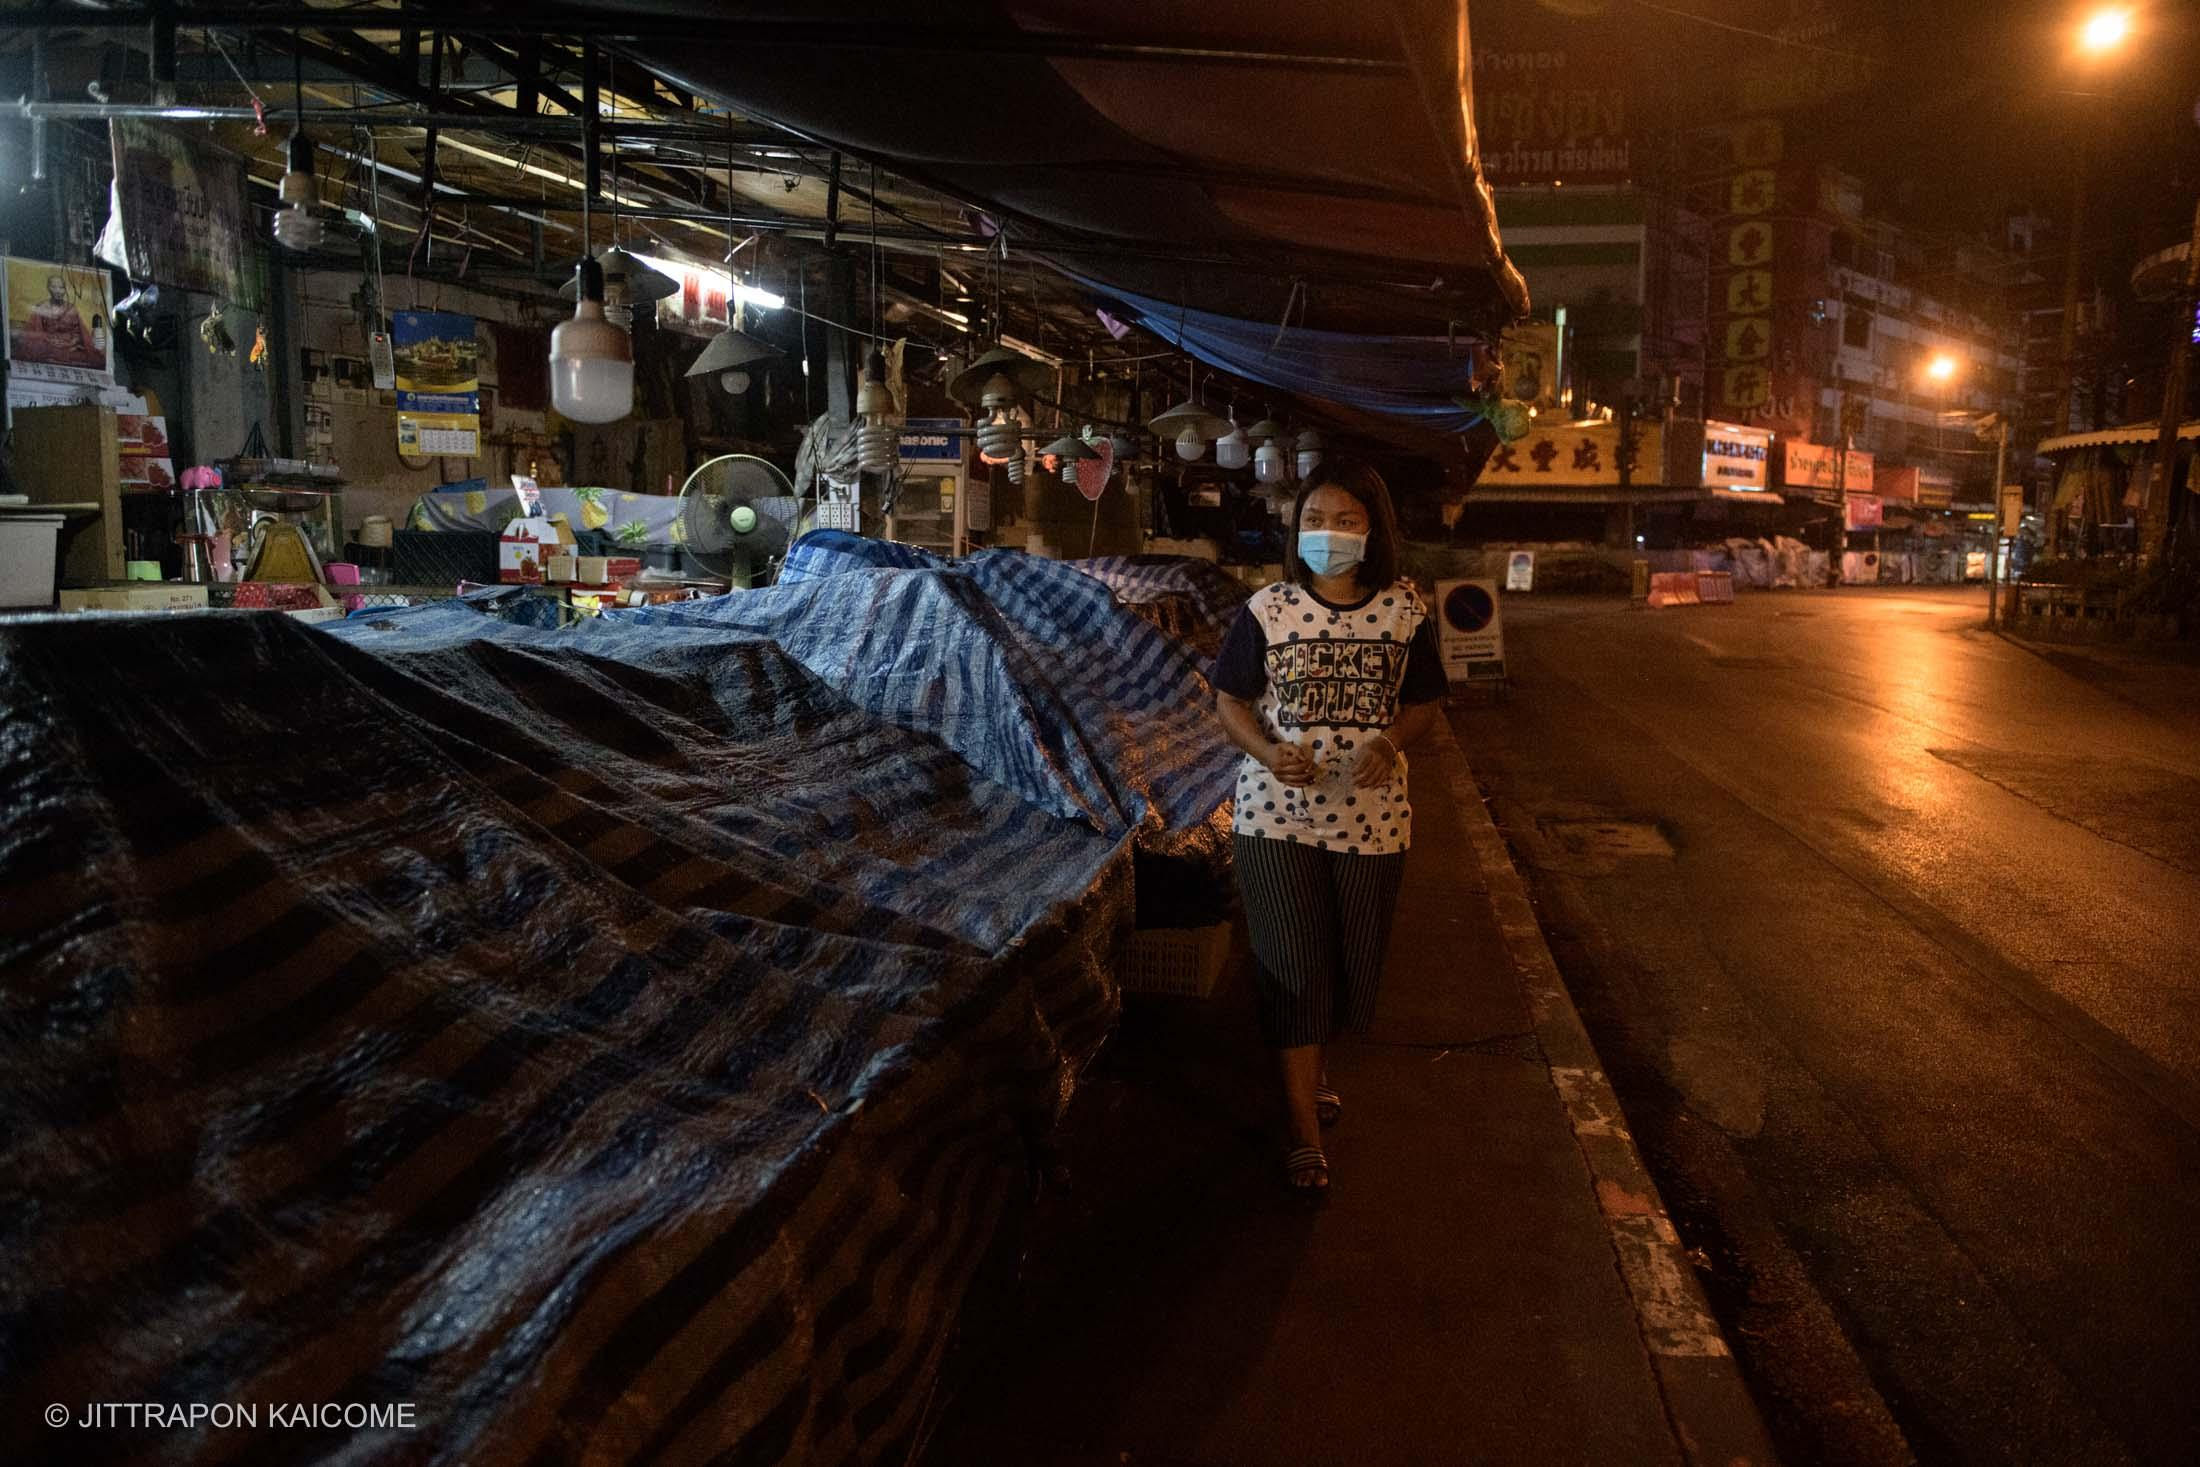 08.23 PM - Warorot Market, the well-recognized old market, a site to buy and sell local food, fruits, clothes and a wide variety of products is open from early till late night. Before the outbreak of the virus, vendors were able to earn a decent income. Chiang Mai, Thailand in March 25, 2020.